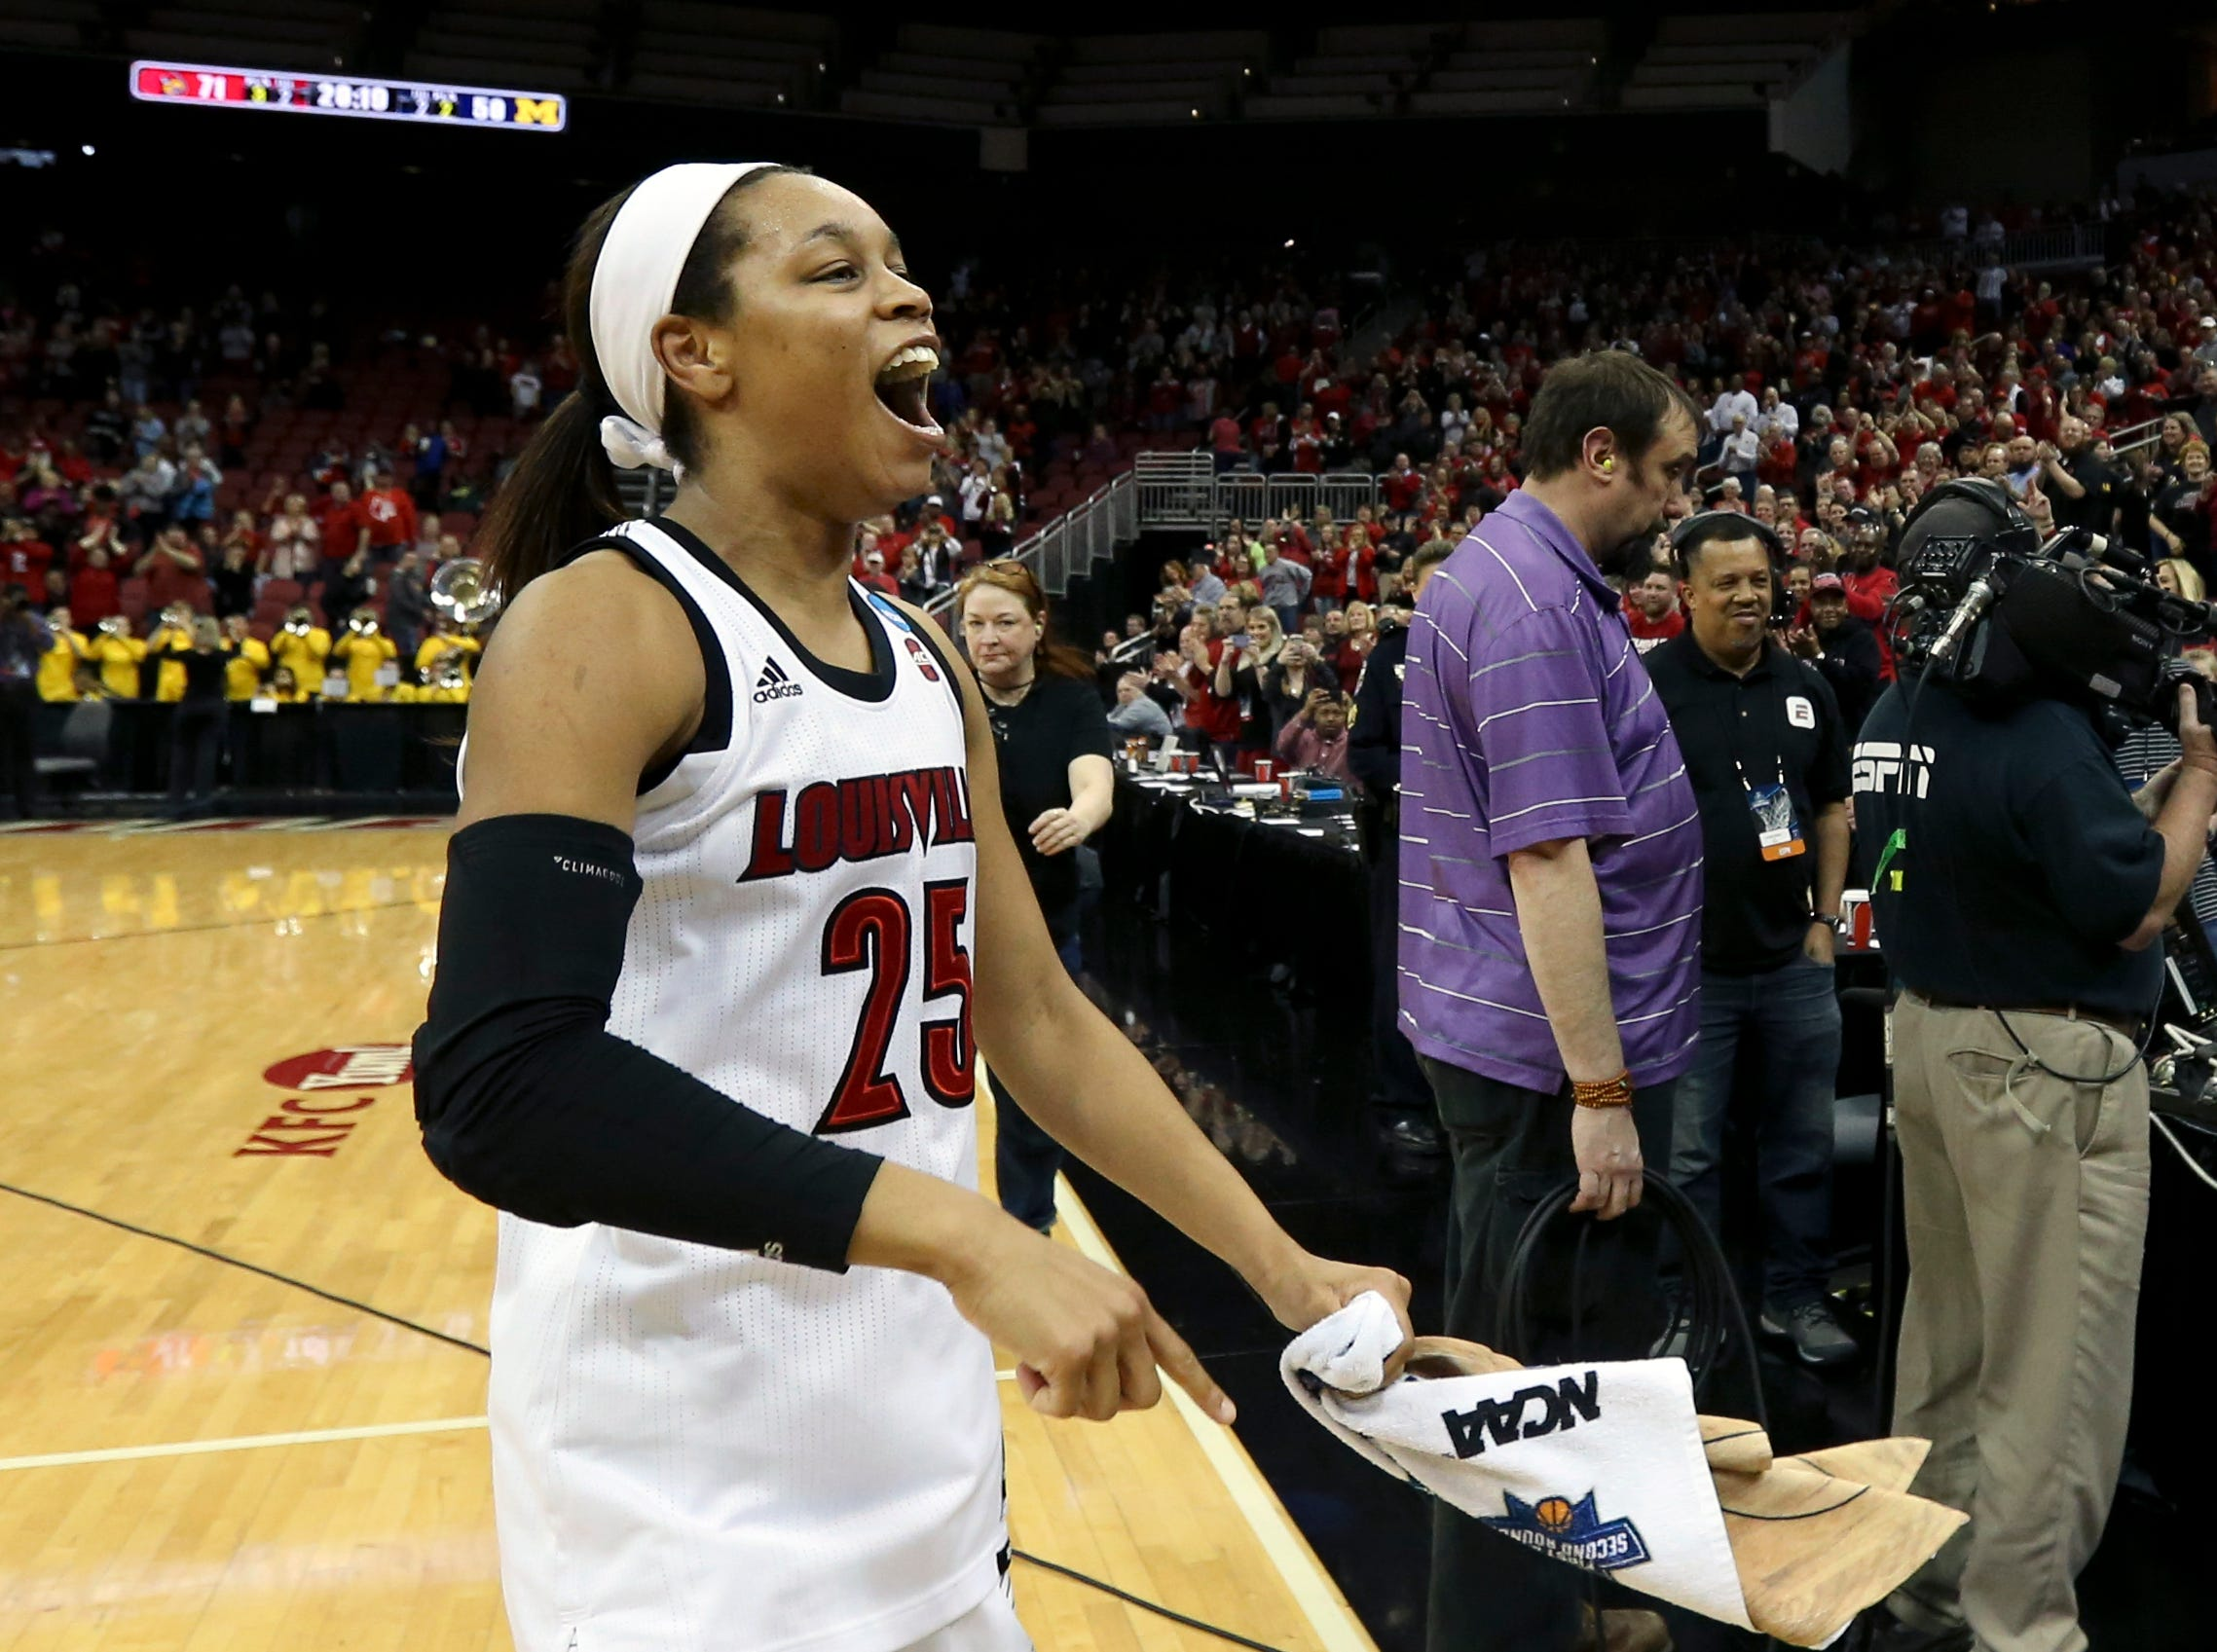 Louisville's Asia Durr does a celebration lap after the Cardinals punch their ticket to the Sweet 16 by beating Michigan at the KFC Yum Center on March 24.